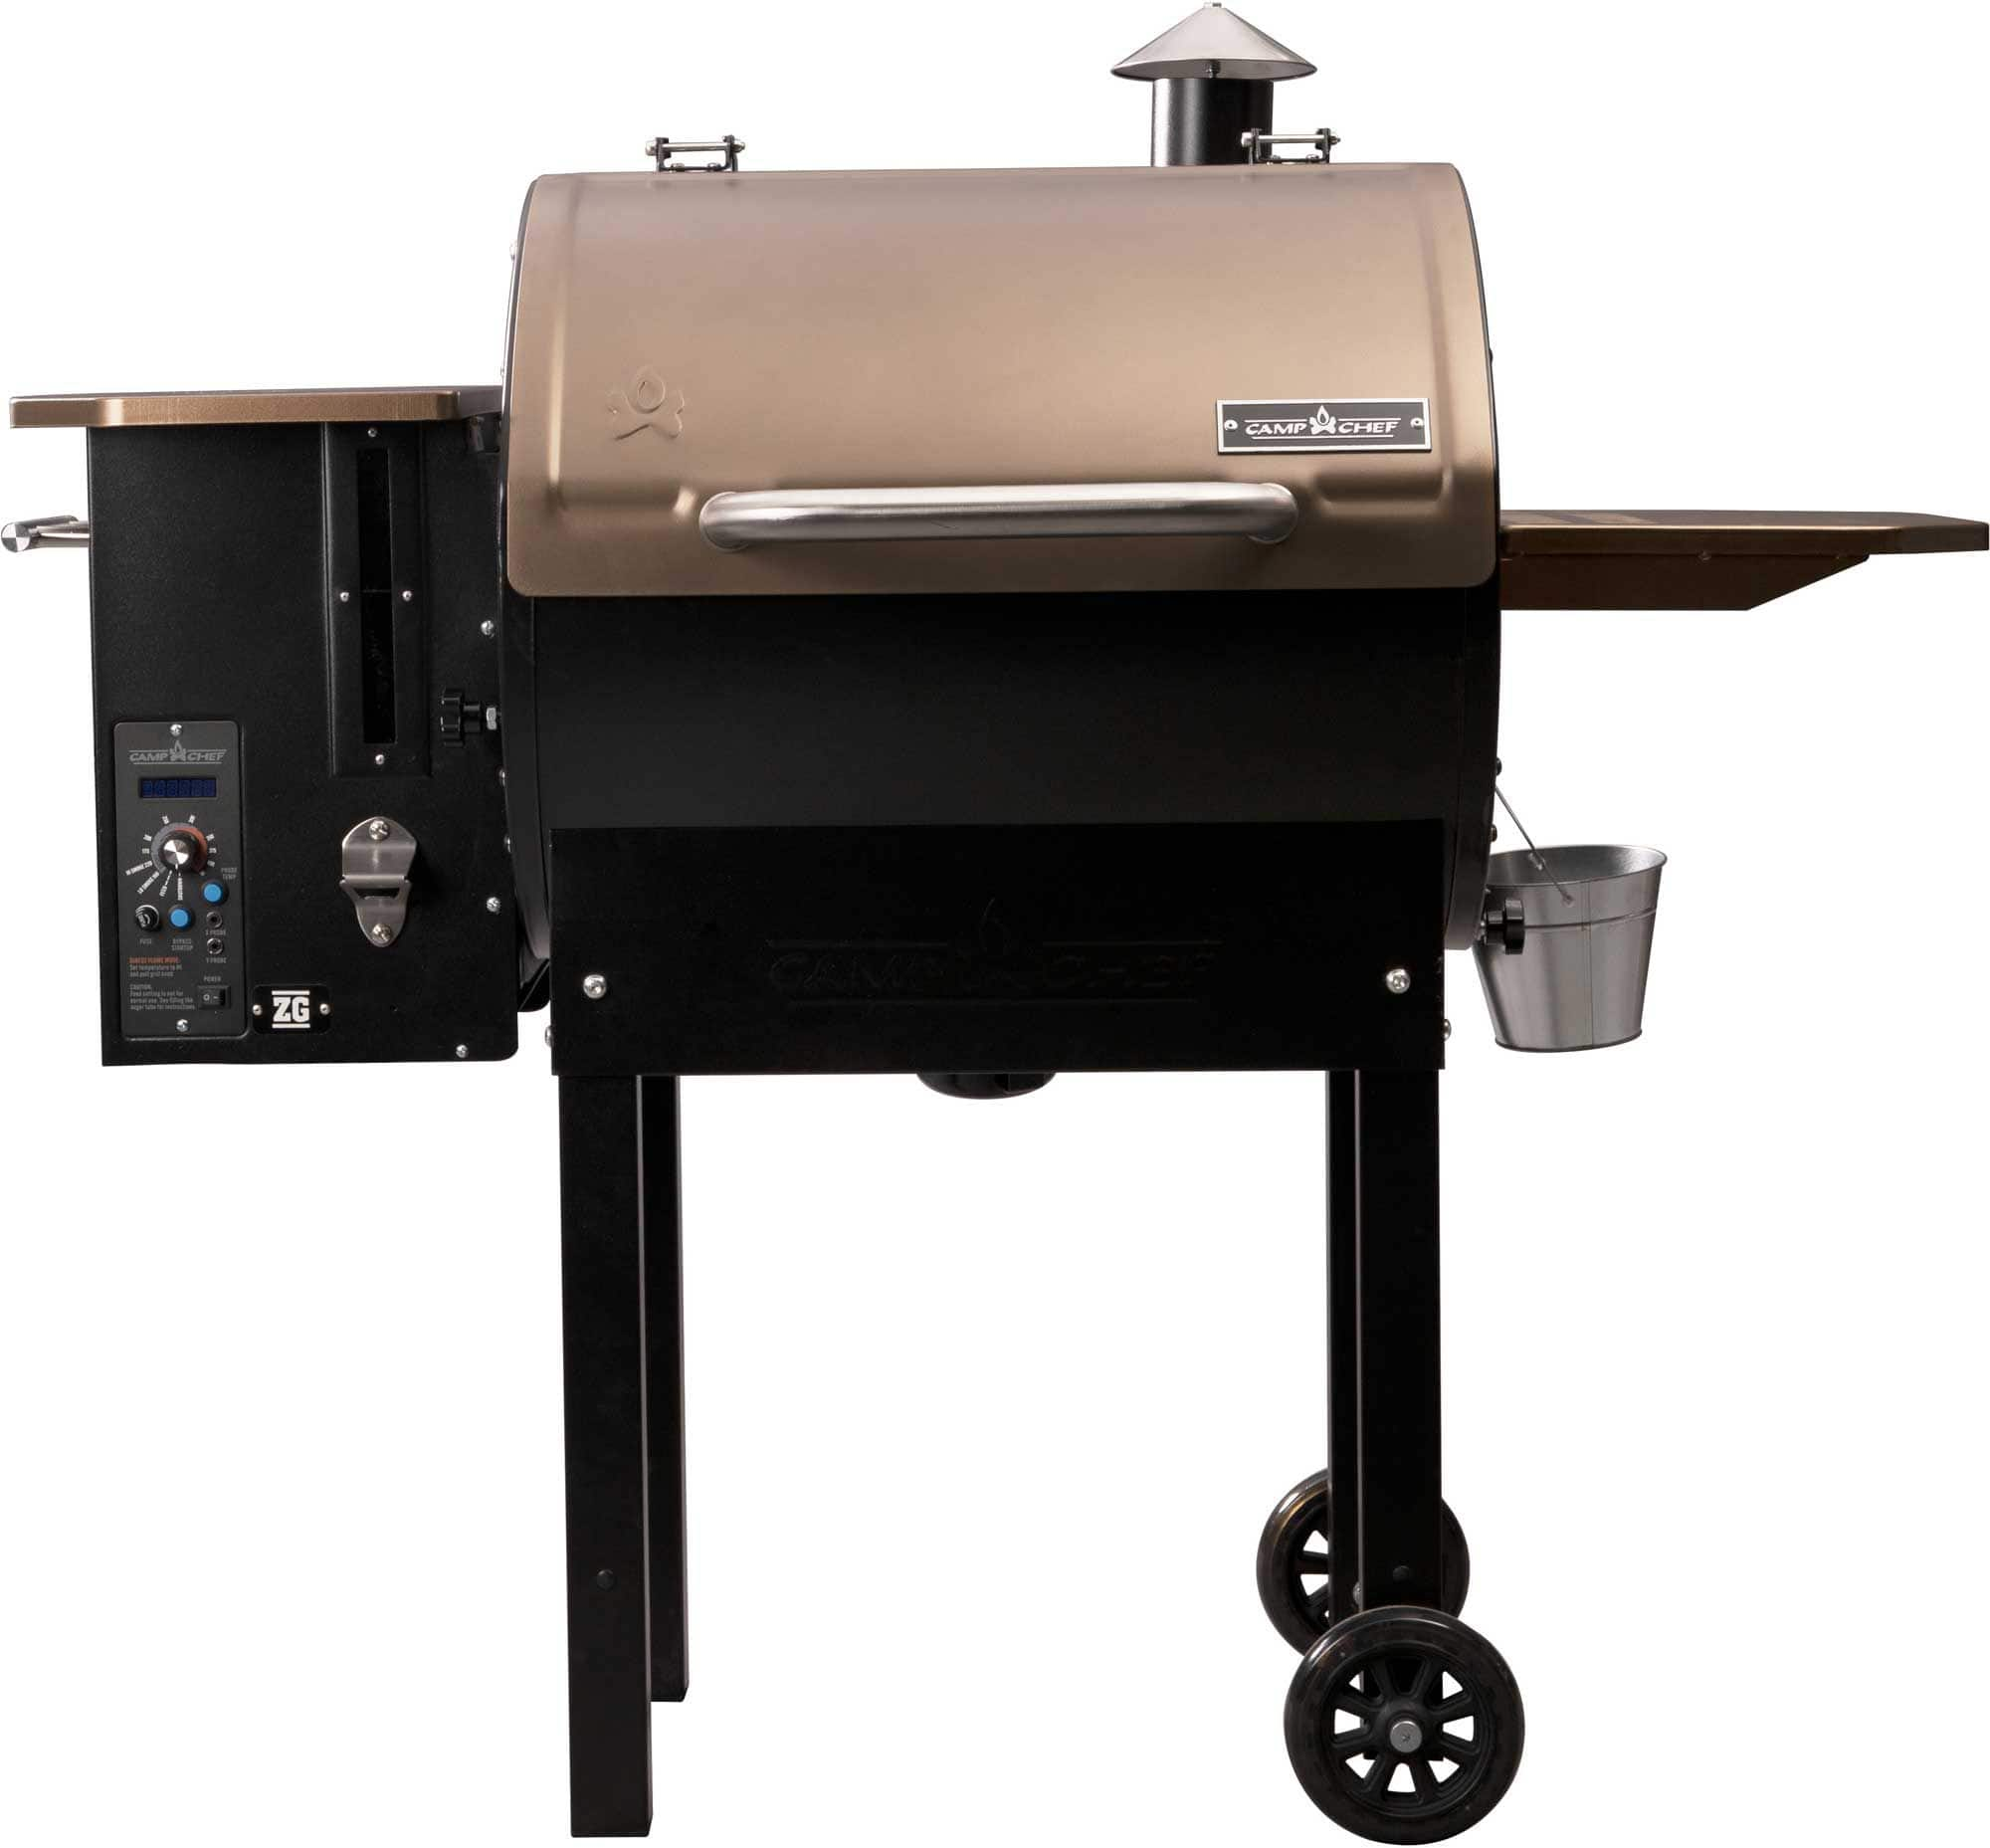 "Camp Chef Slide and Grill 24"" Pellet Grill PG24ZG $499.98"